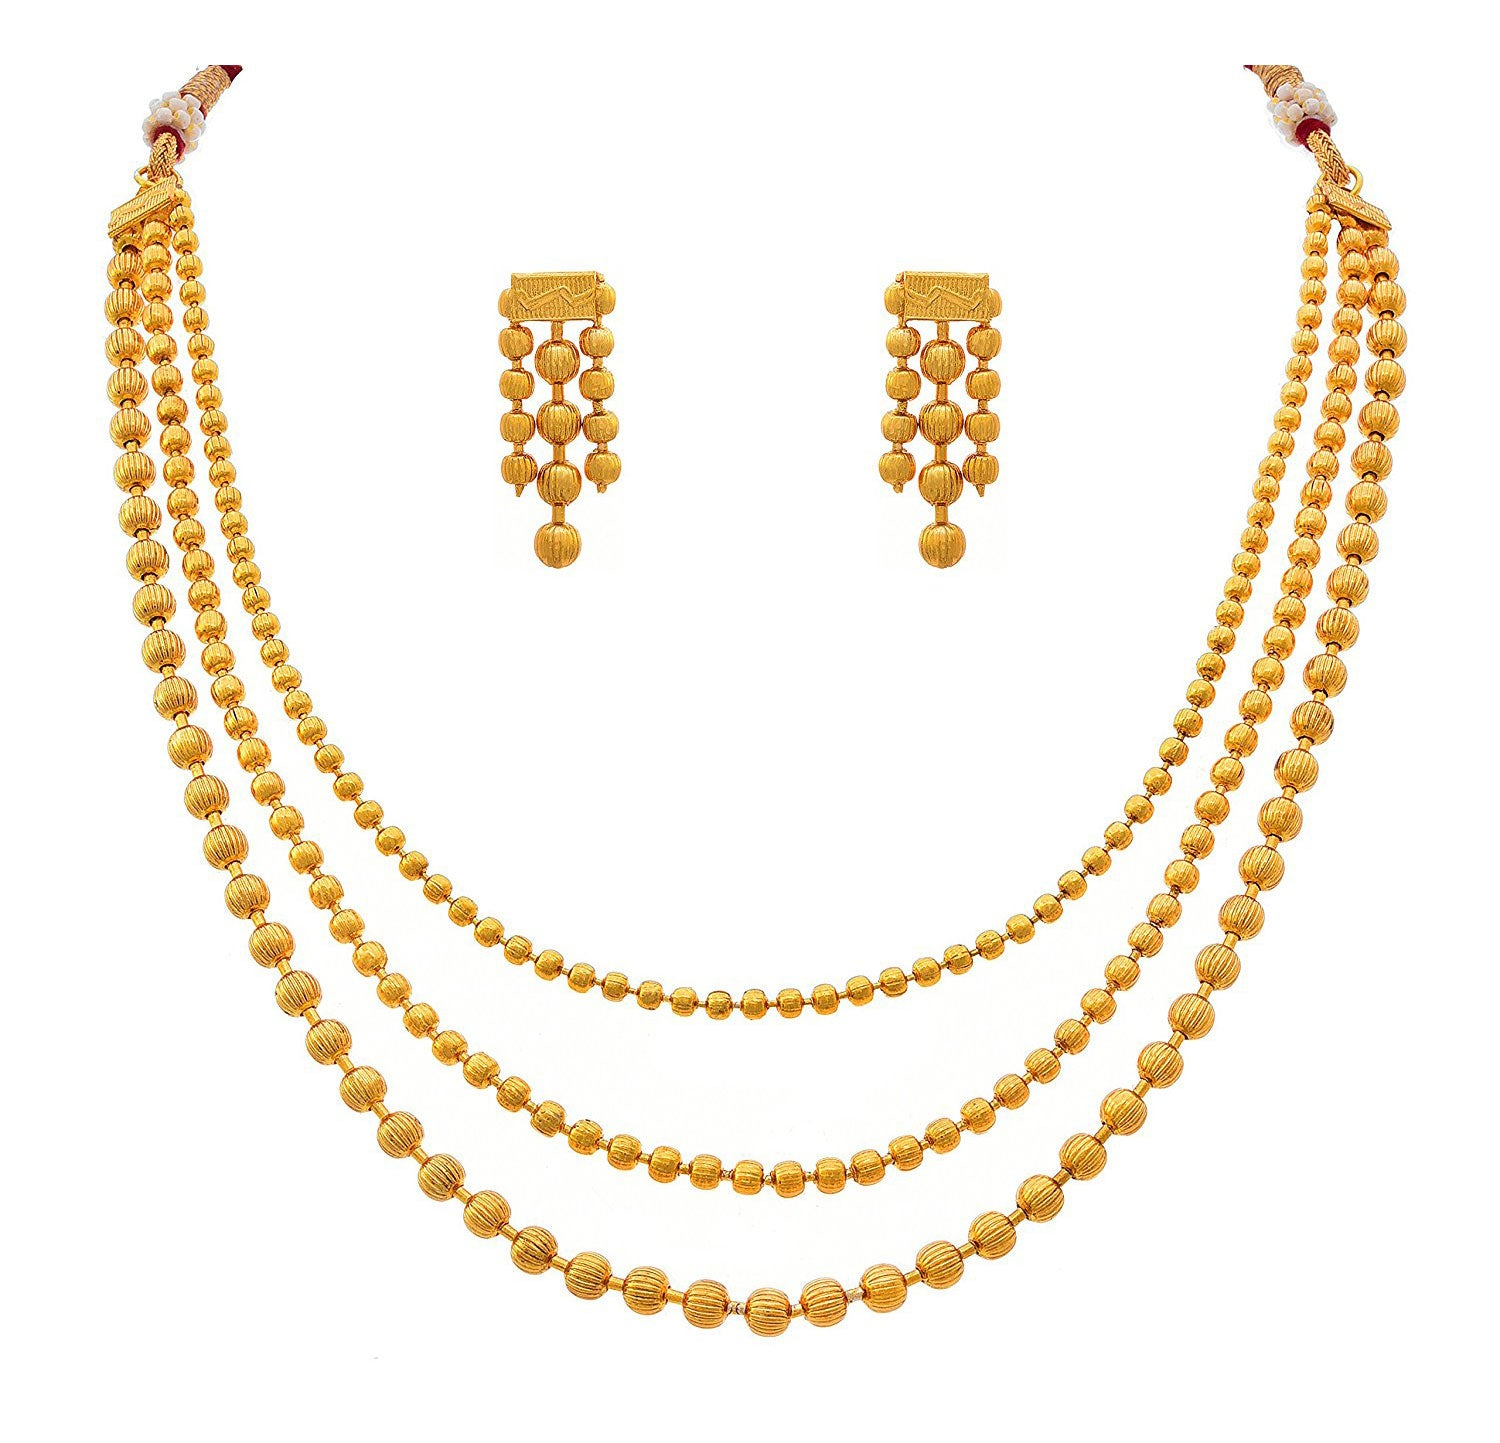 One Gram Gold Plated Multi Strand Gold Bead Necklace Set With Thread Behind And Earrings For Women